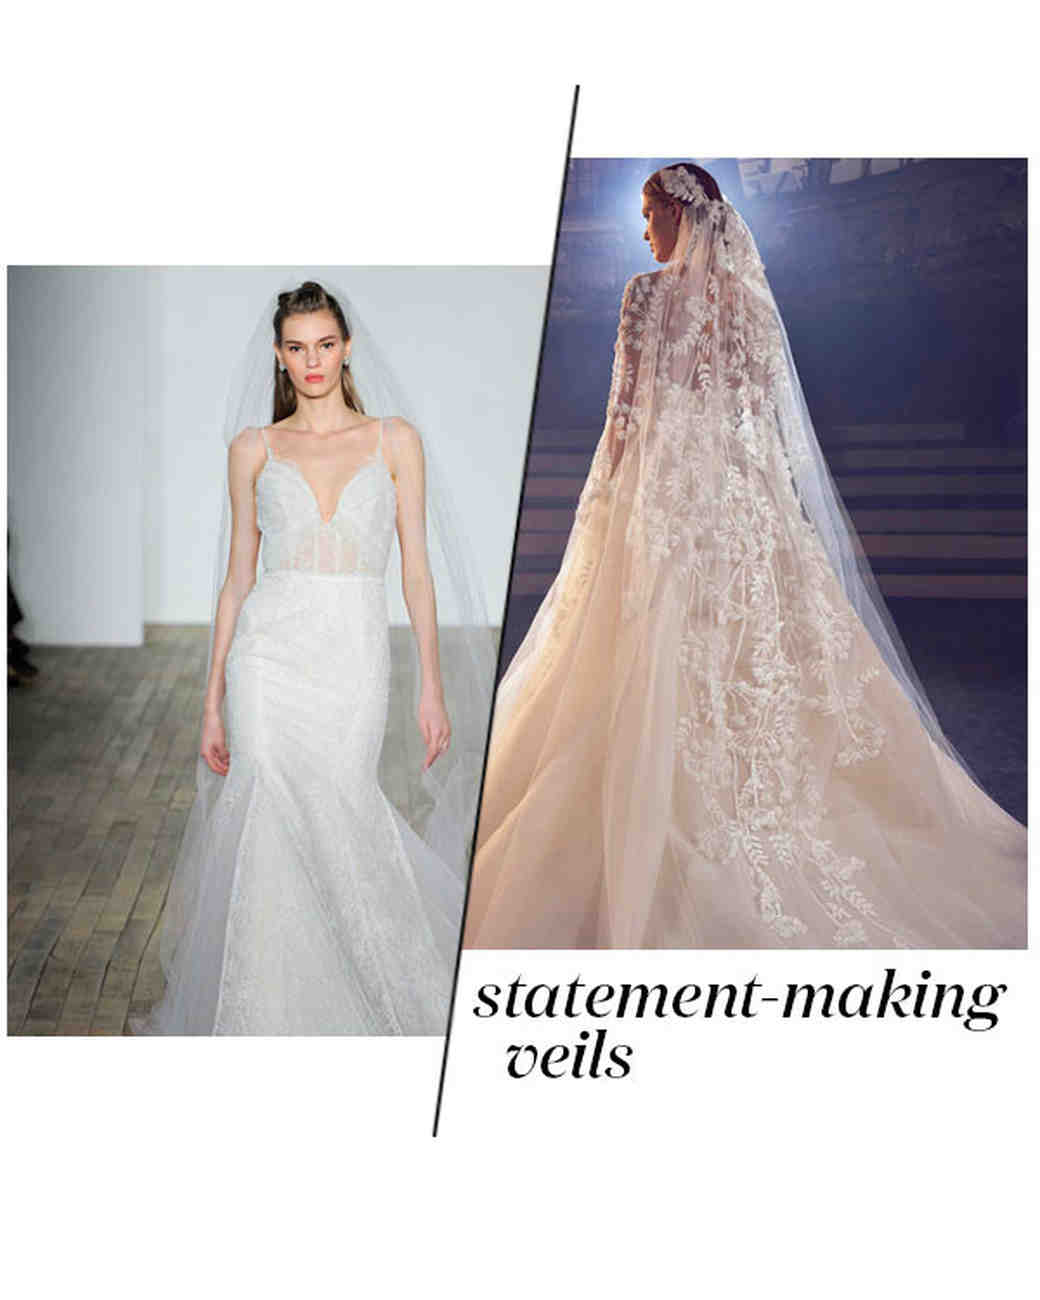 Fall 2018 Wedding Dress Trends, Statement-Making Veils